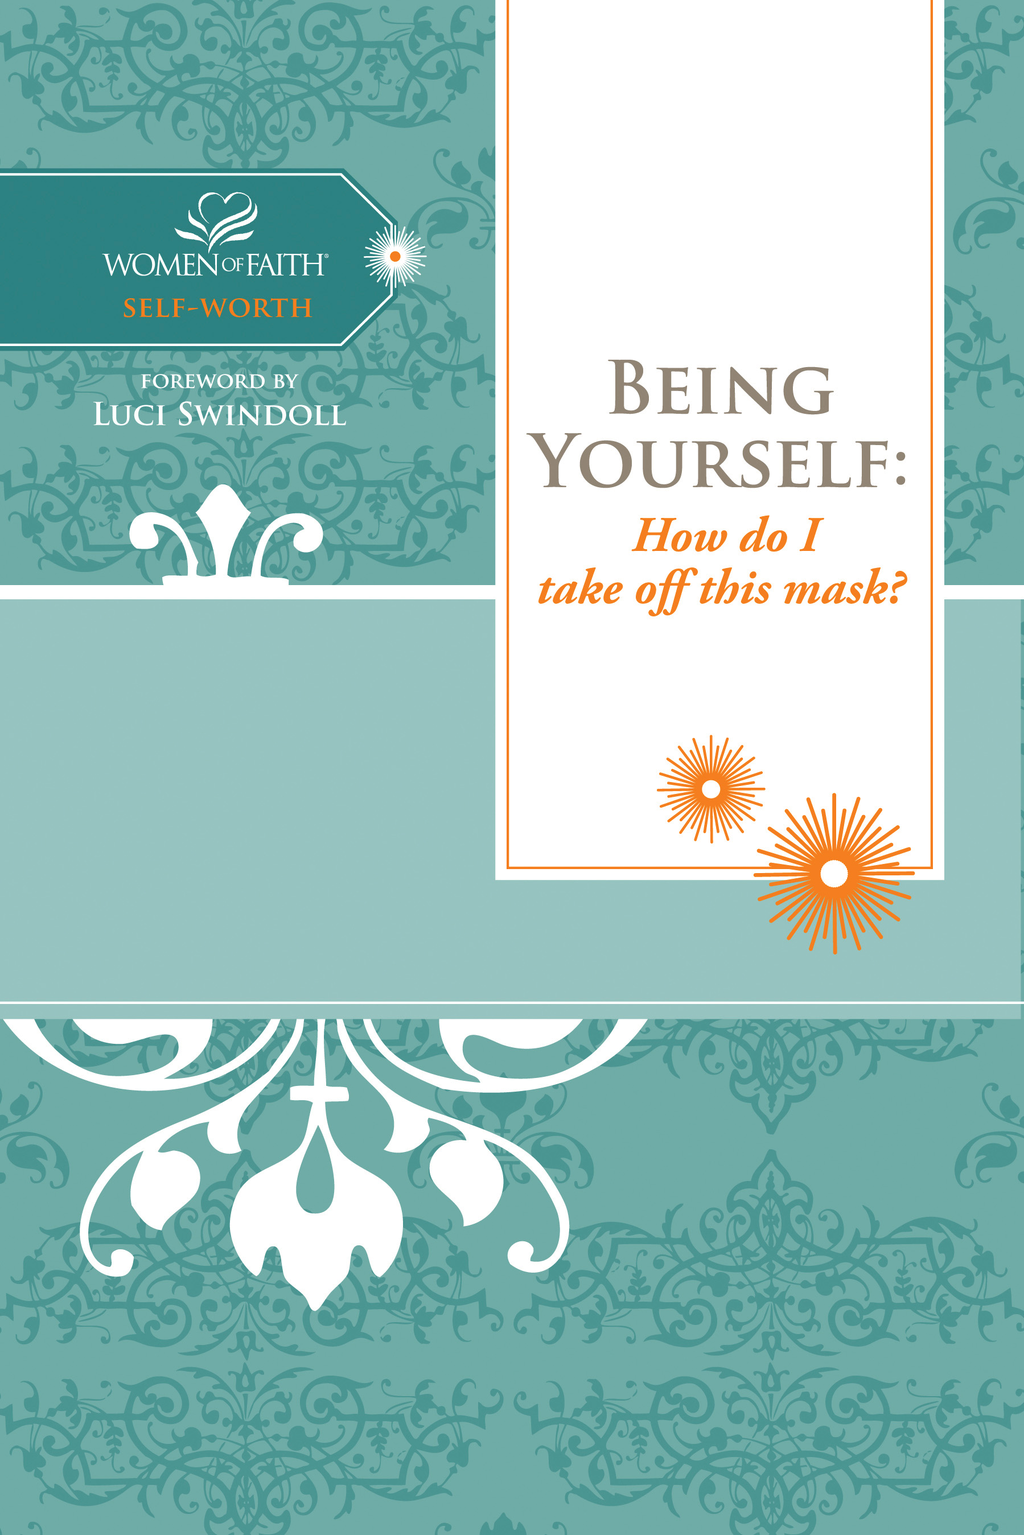 Being Yourself By: Women of Faith